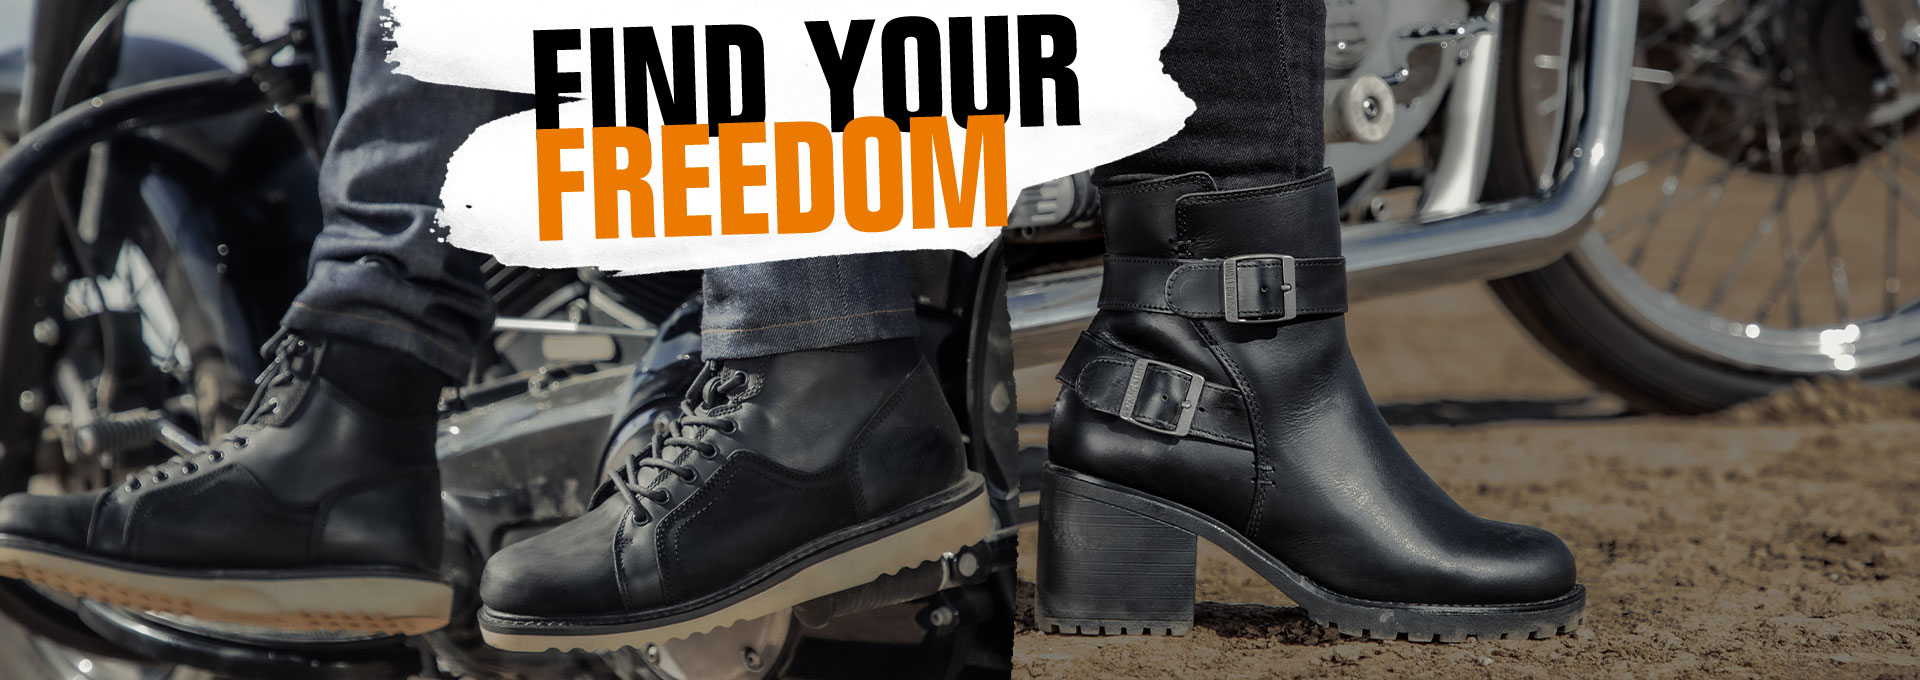 Find Your Freedom.